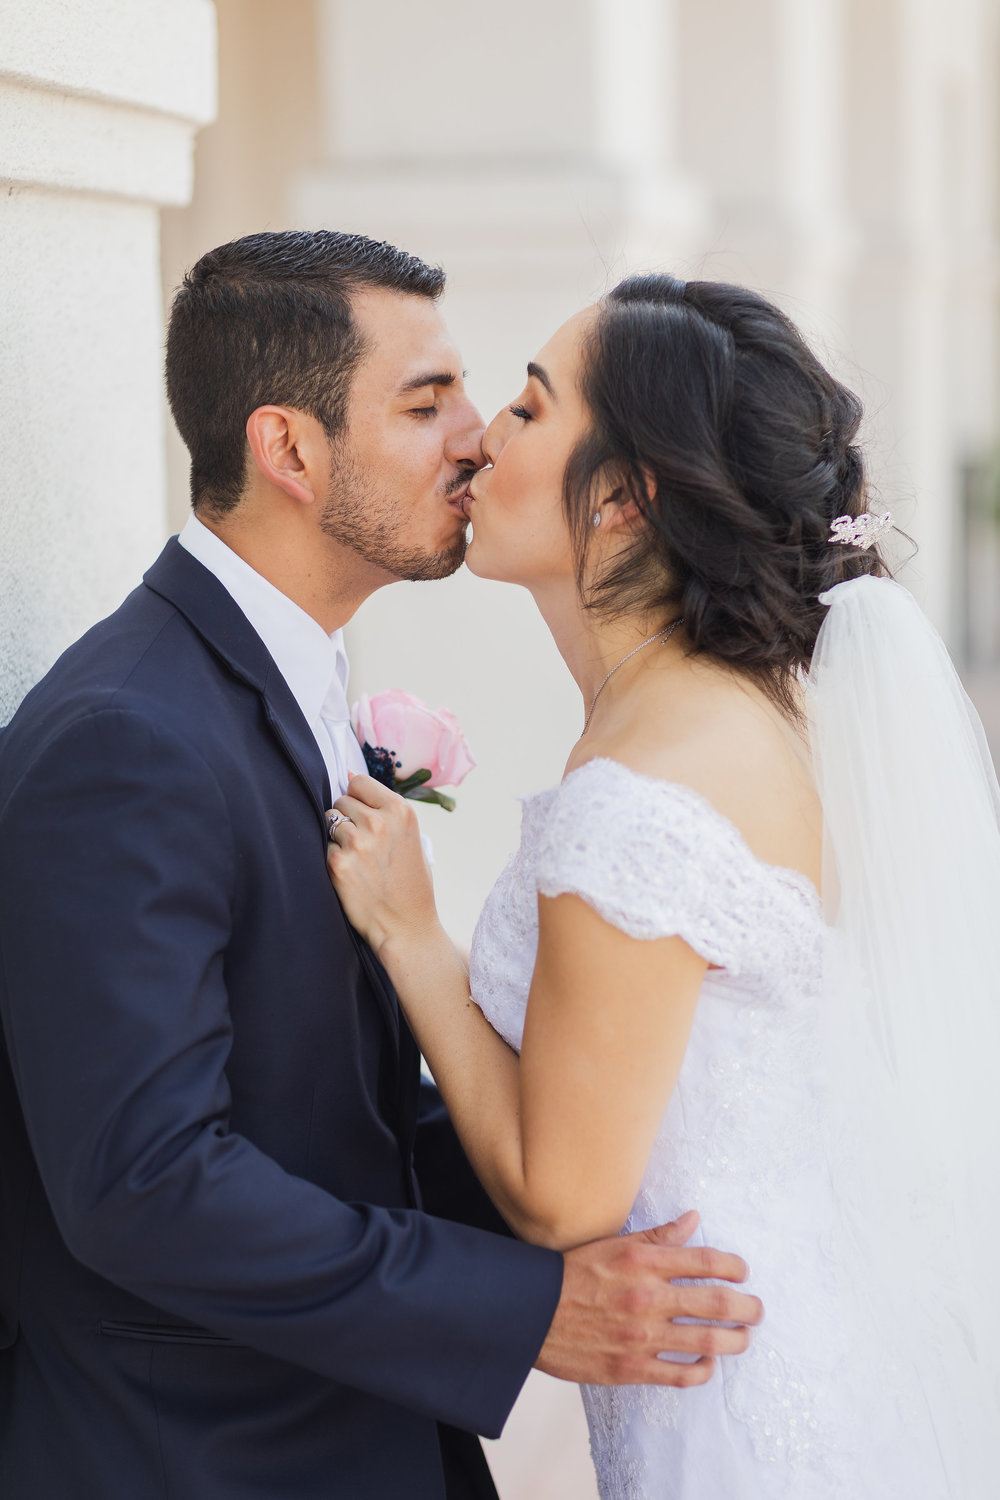 ! Gorgeous Photo of Bride and Groom Kiss.jpg